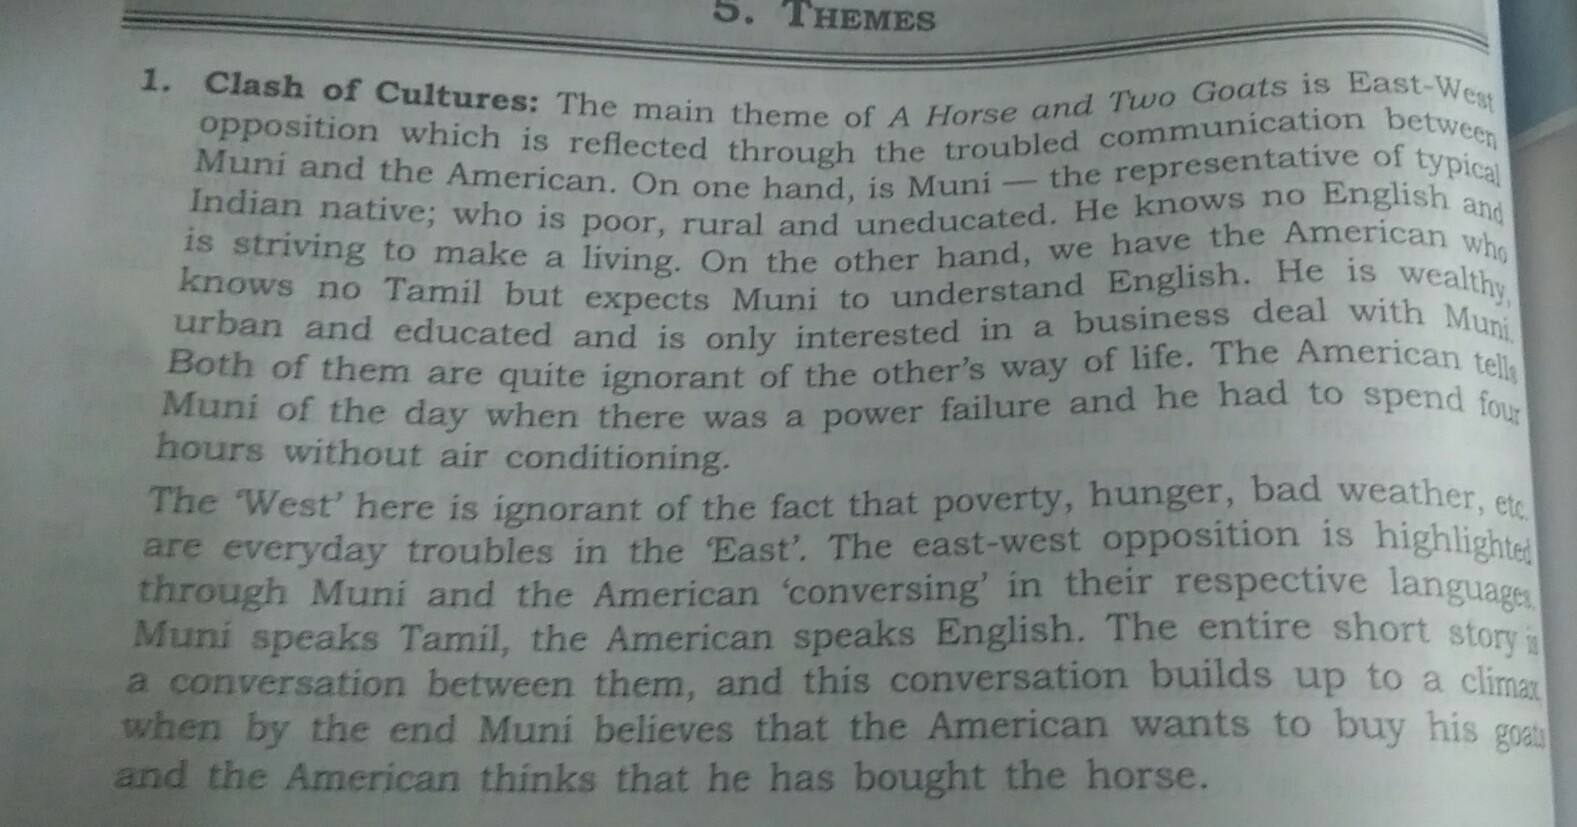 How is the clash of cultures brought about in the story A horse and